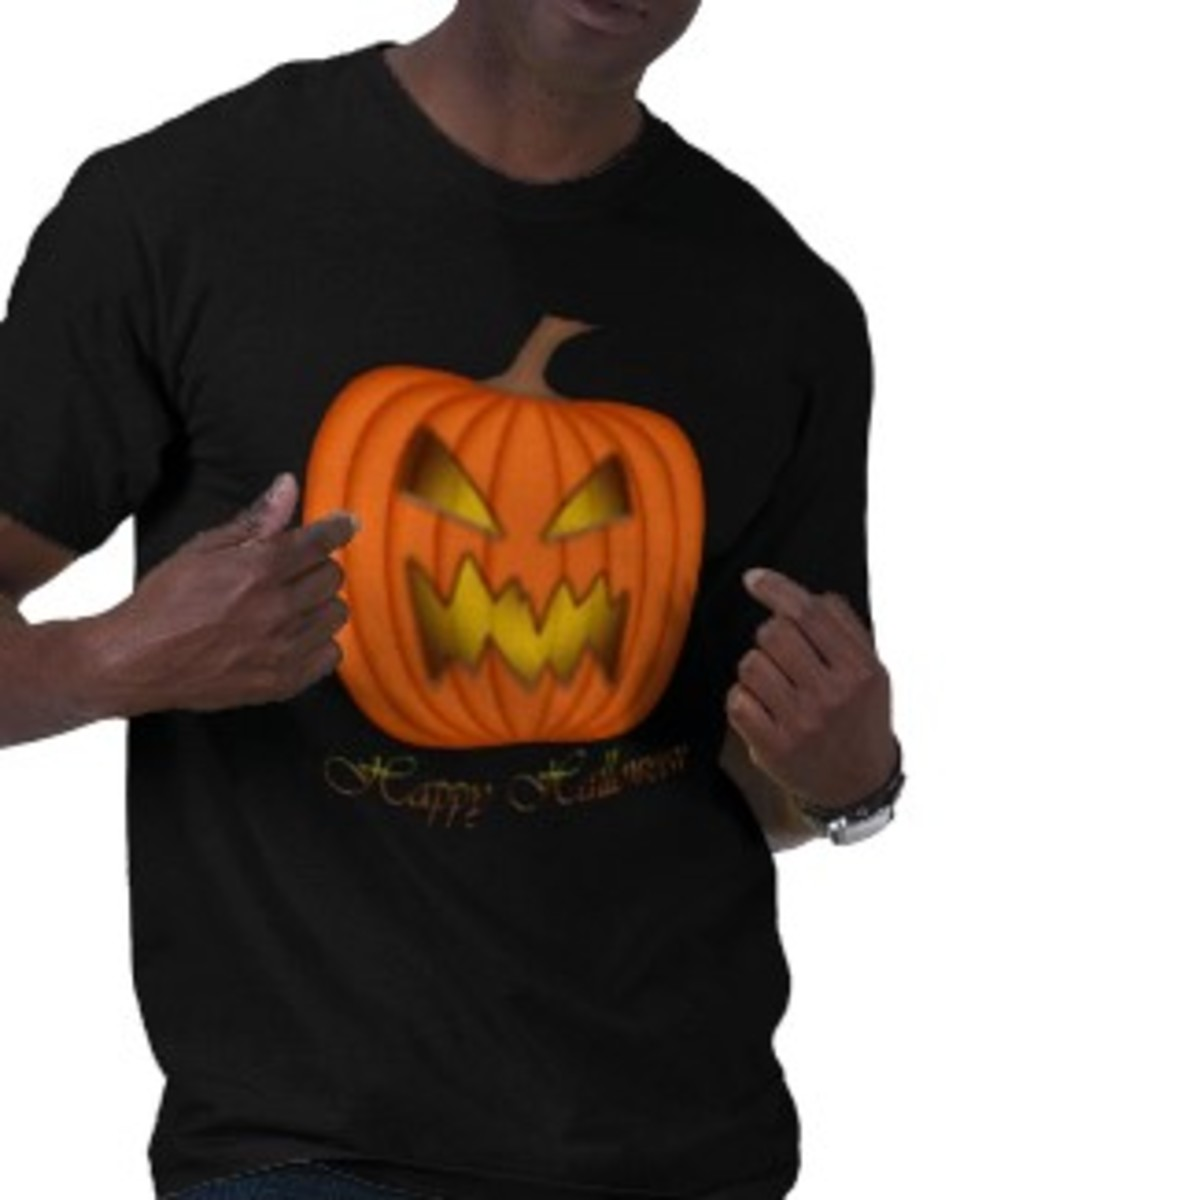 Men's pumpkin Happy Halloween orange and black shirt created by PulseDragon on Zazzle